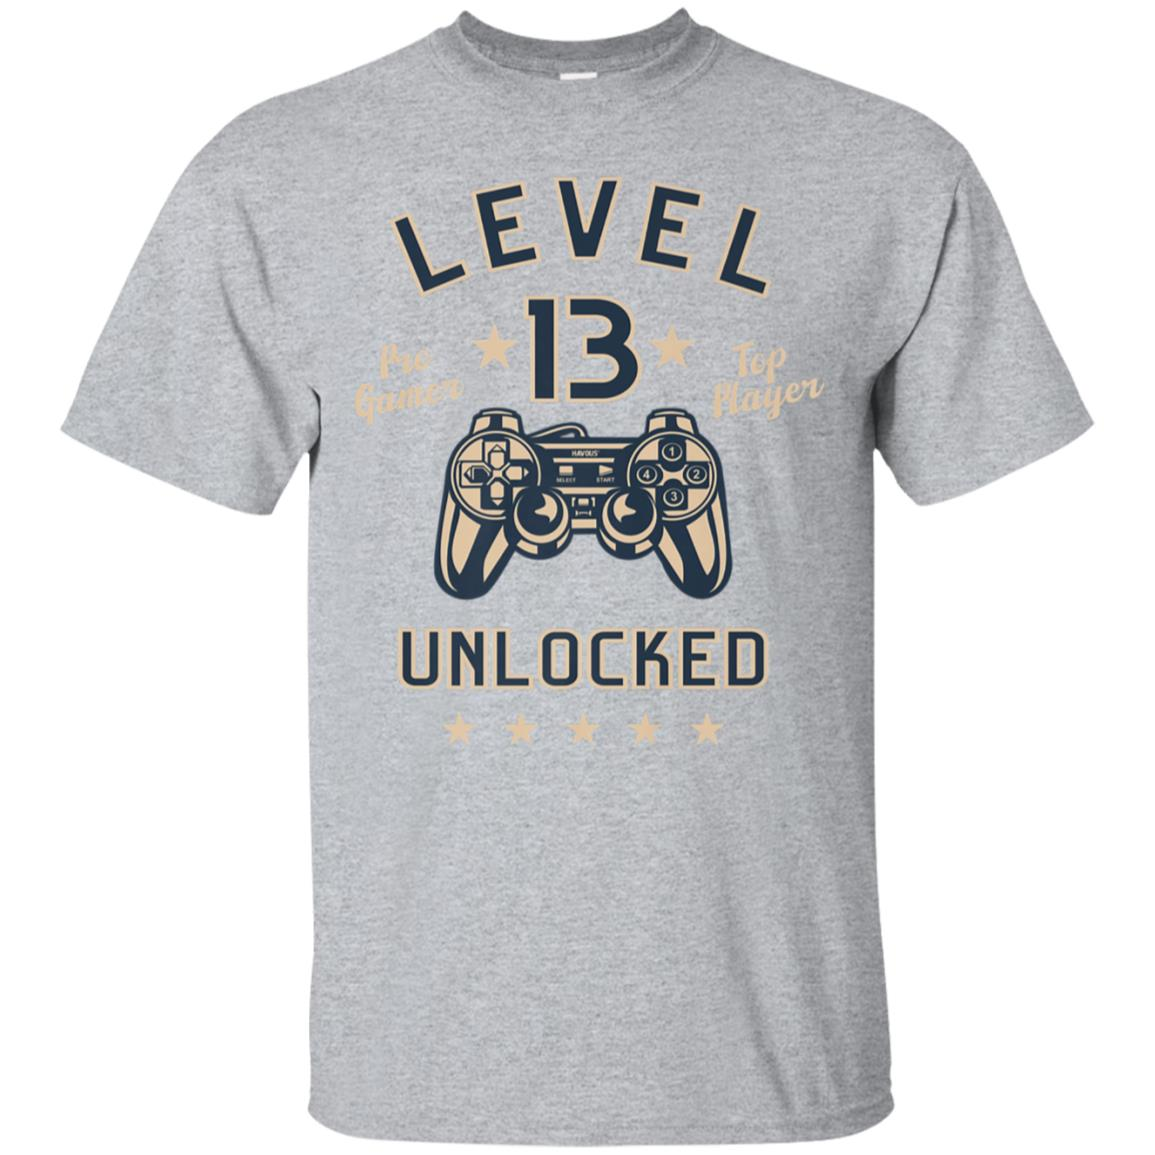 13th Birthday Gift T-Shirt Level 13 Unlocked 99promocode